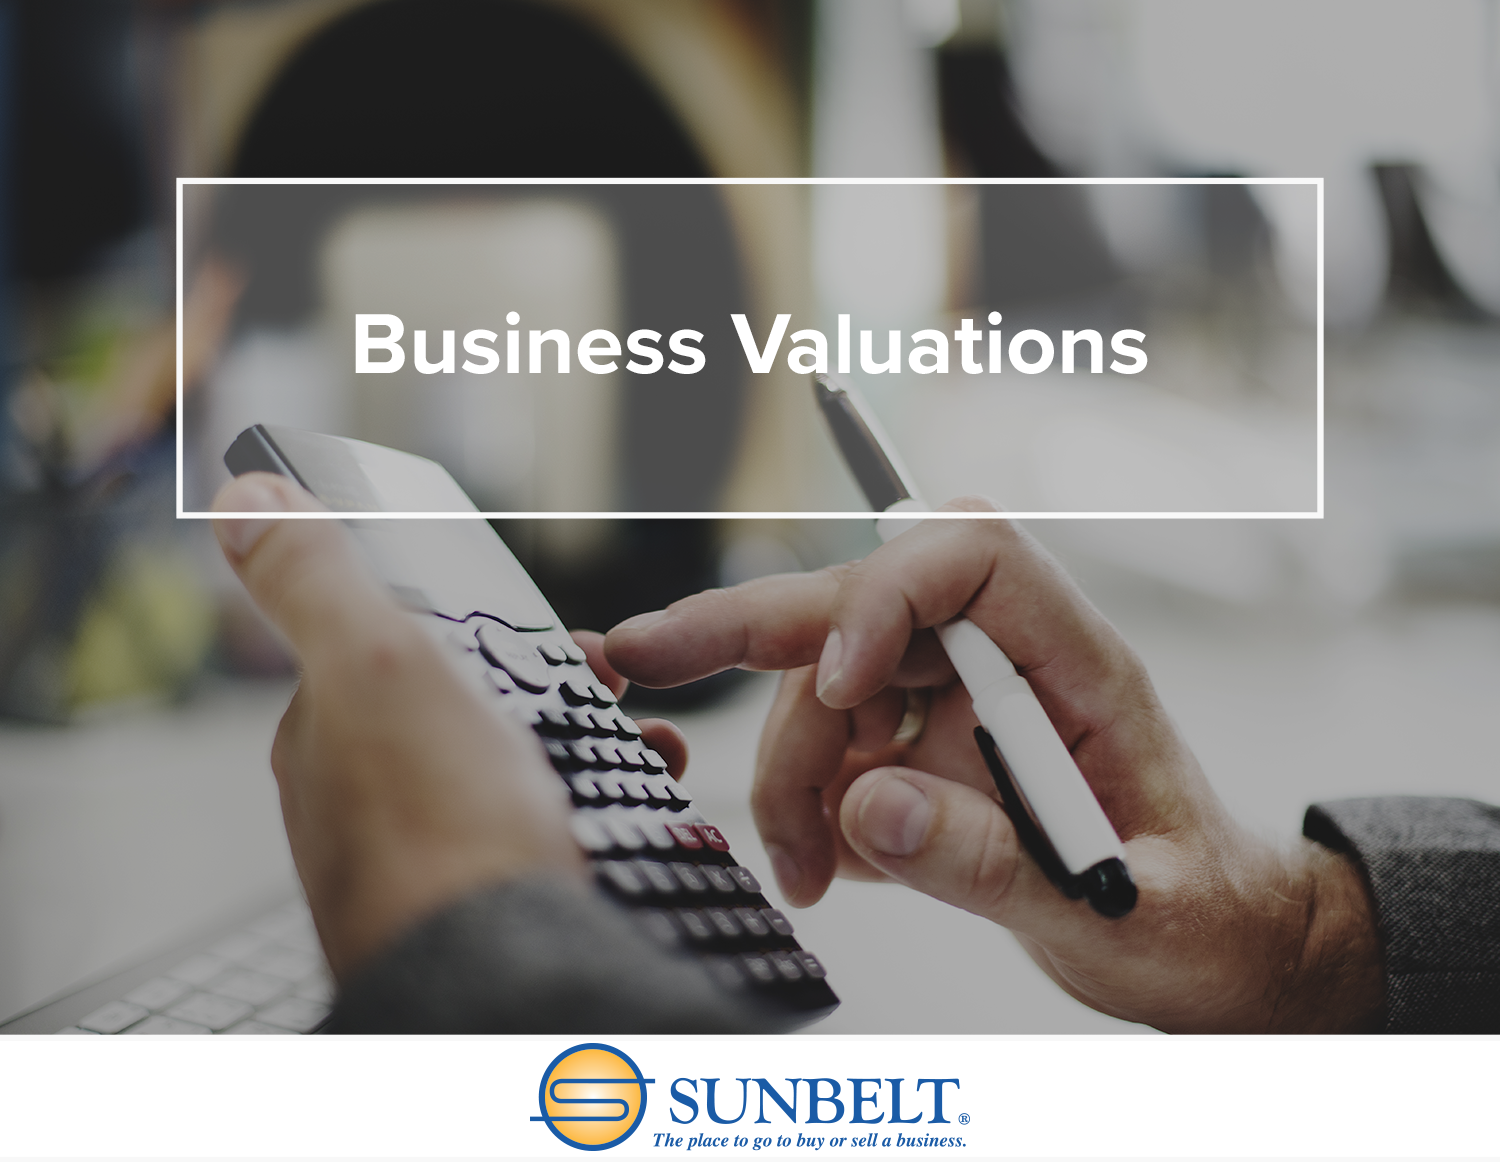 Sunbelt Business Brokers of South Florida - Boca Raton image 0